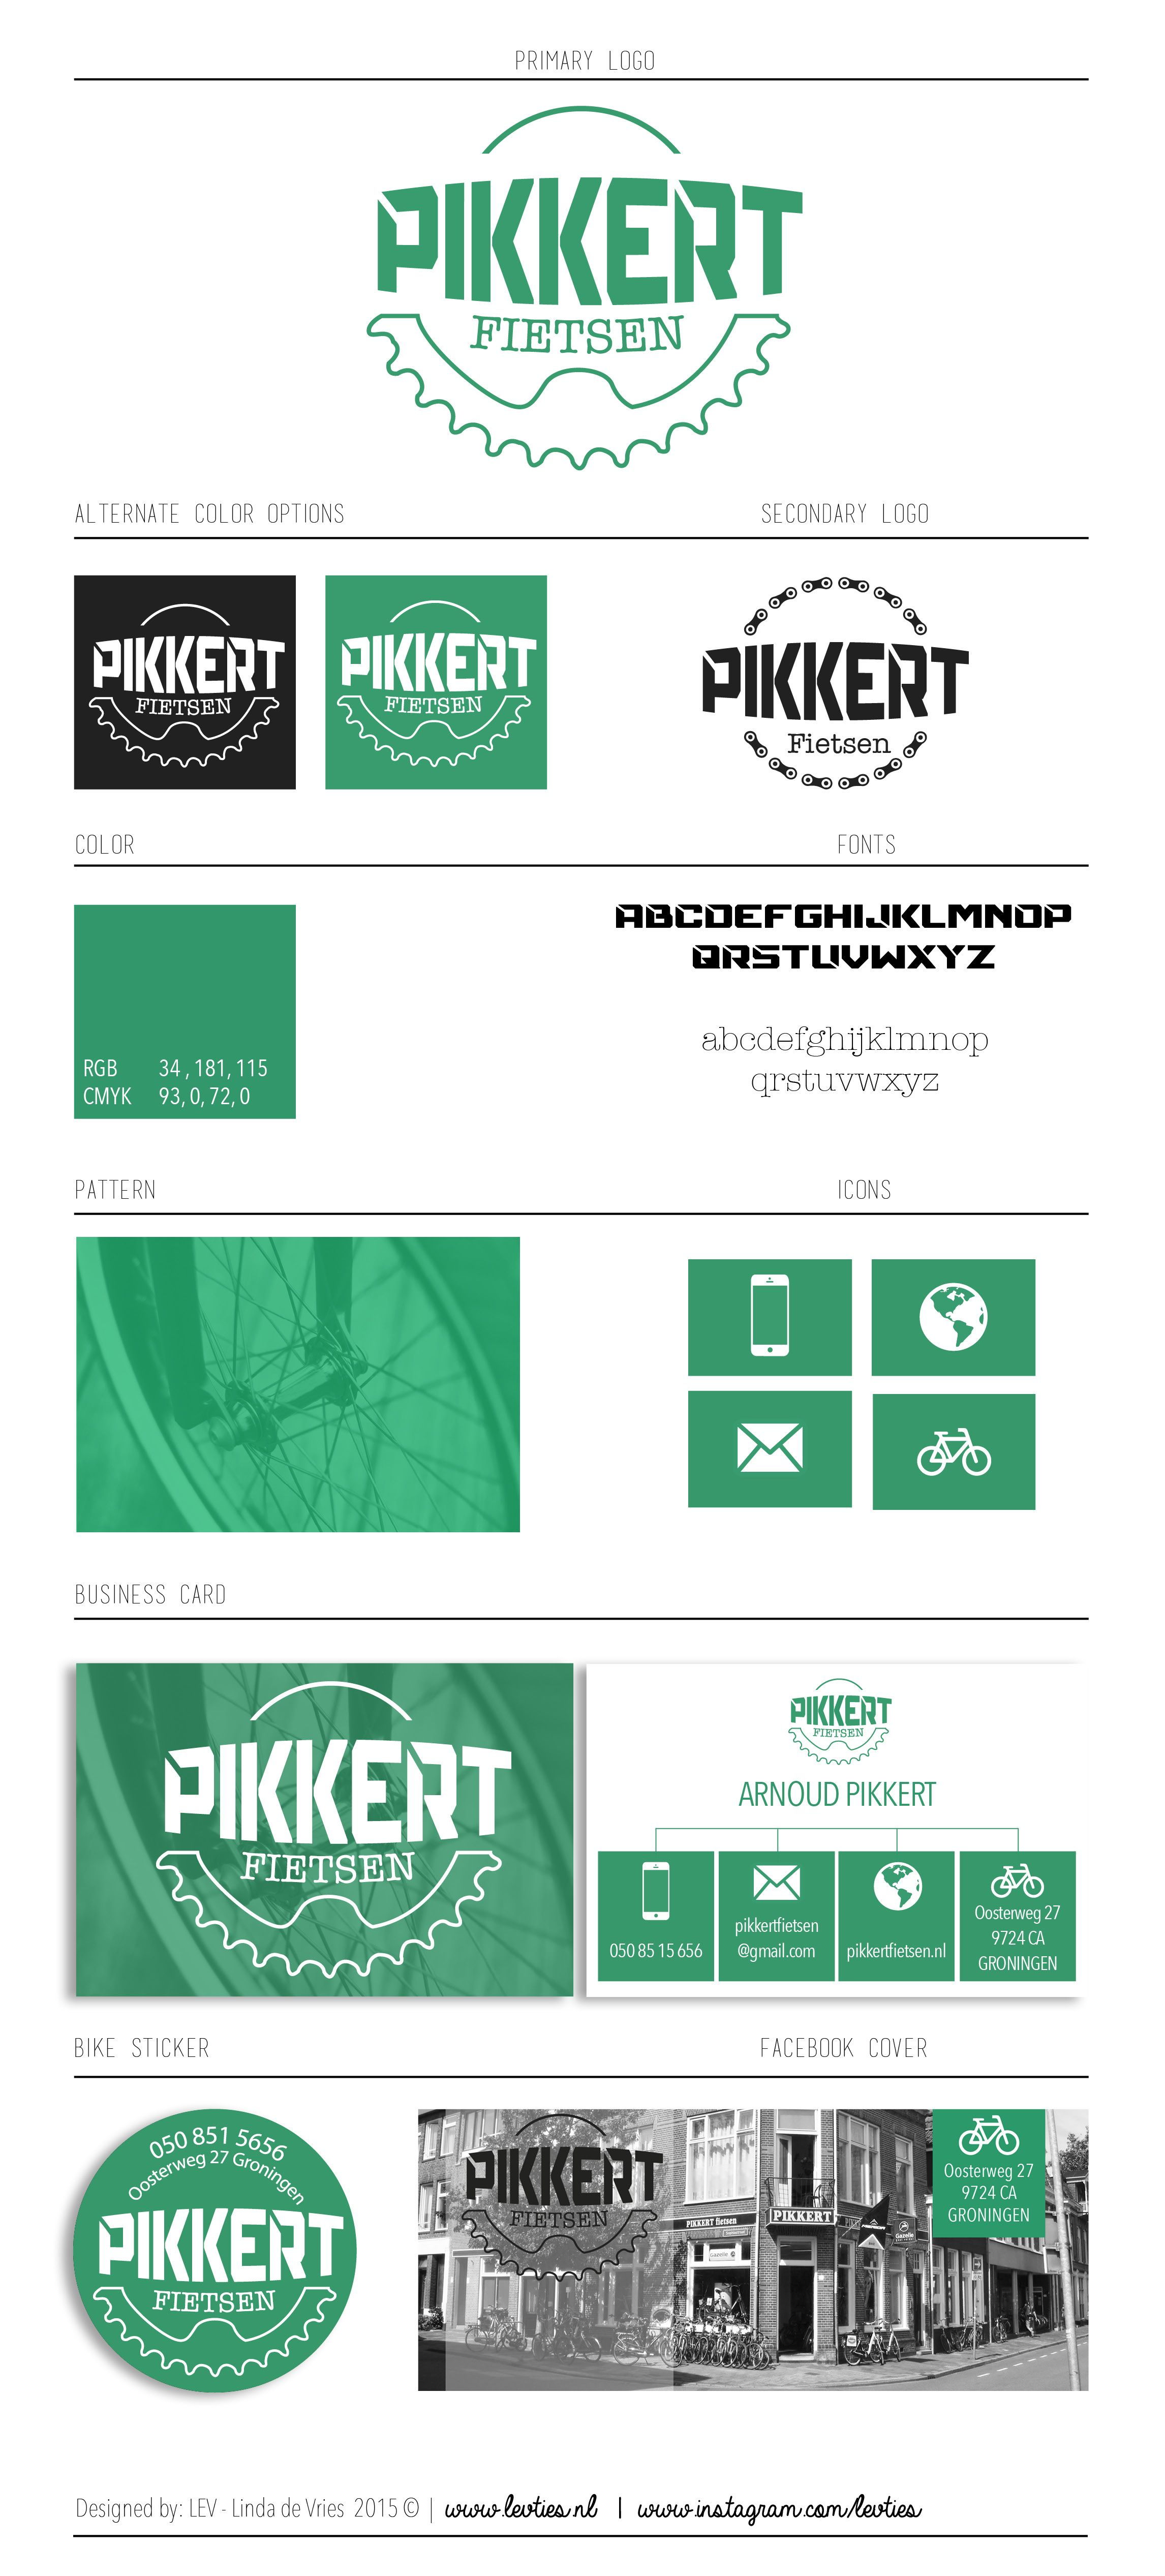 Instagram stickers for business cards best business cards business card bicycle sticker and a designed by lev linda de vries levties nl instagram magicingreecefo Choice Image